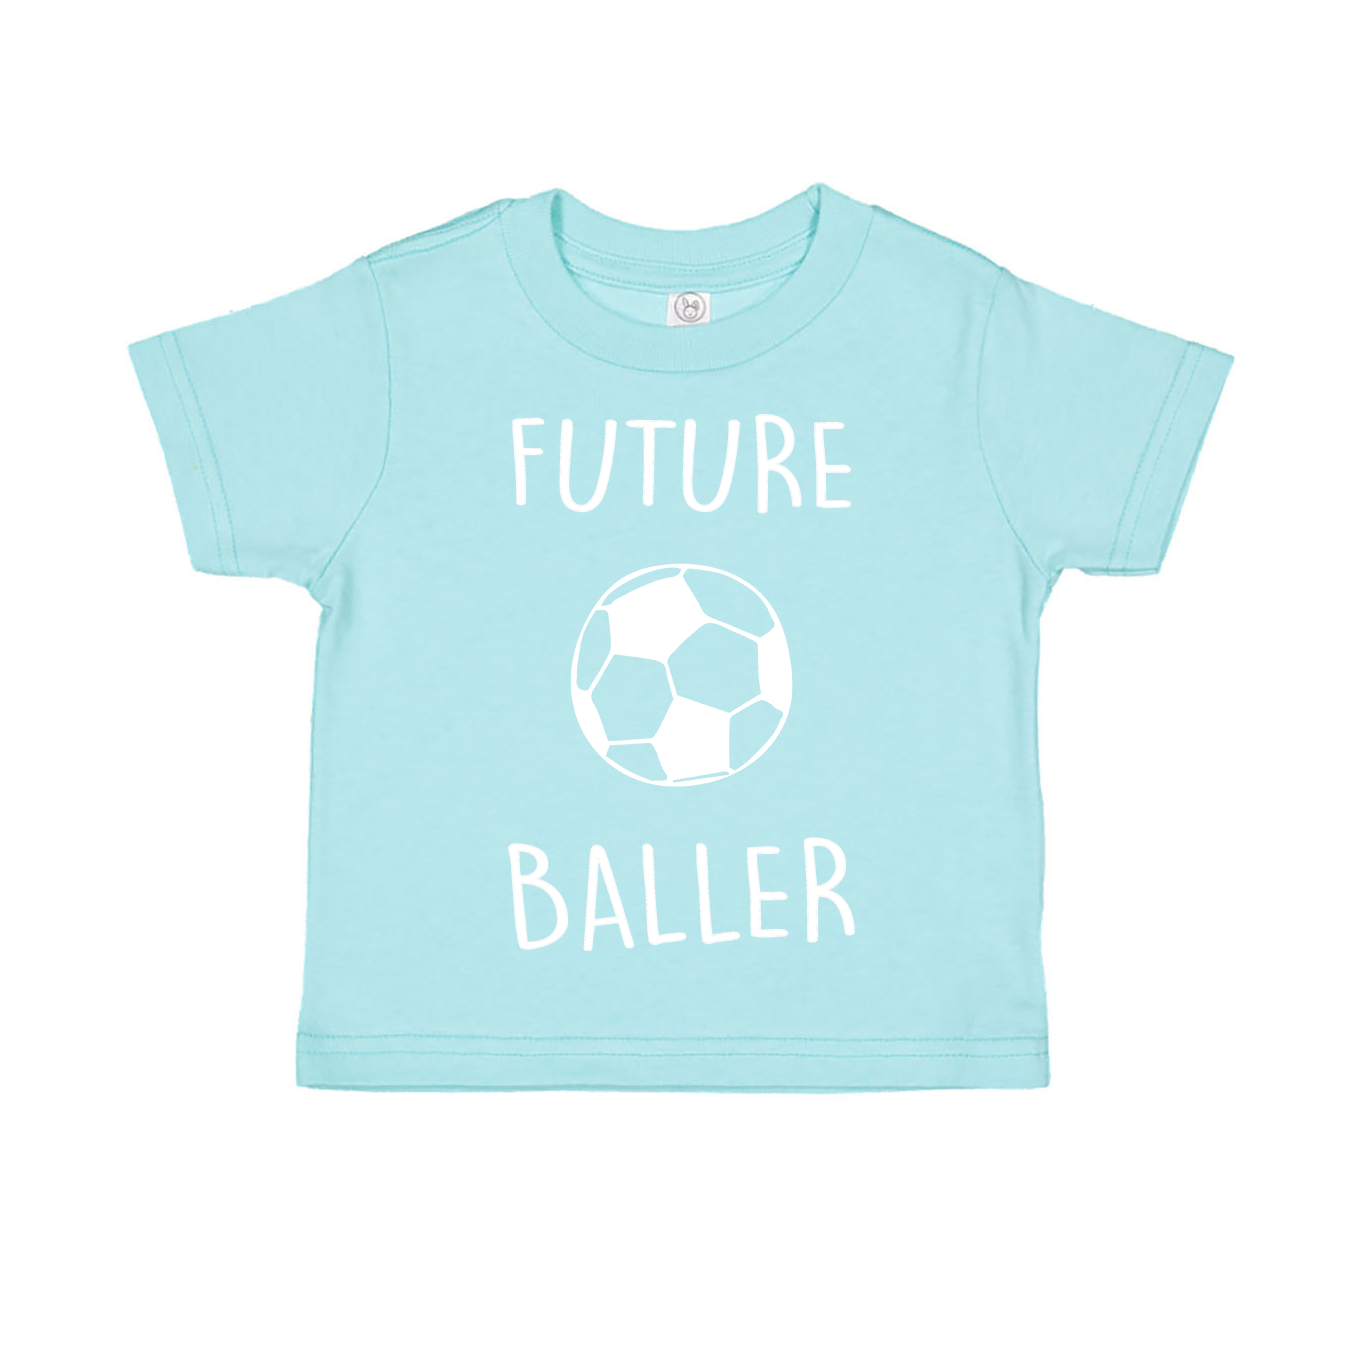 Future Baller Toddler T-Shirt - soccergrlprobs